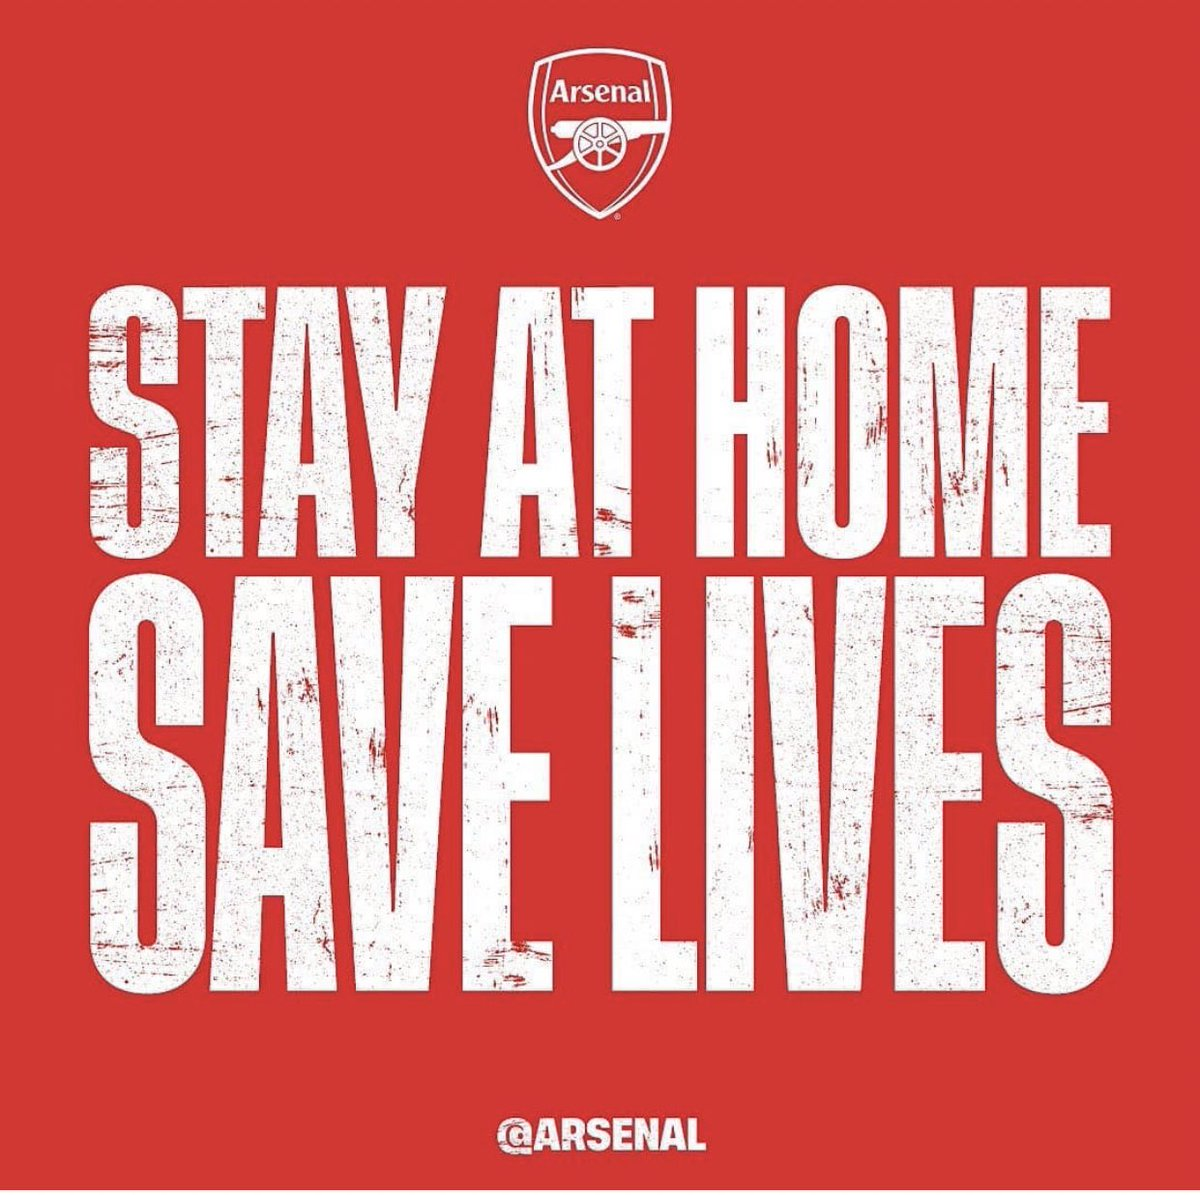 Mikel Arteta (@m8arteta) on Twitter photo 2020-03-23 18:59:56